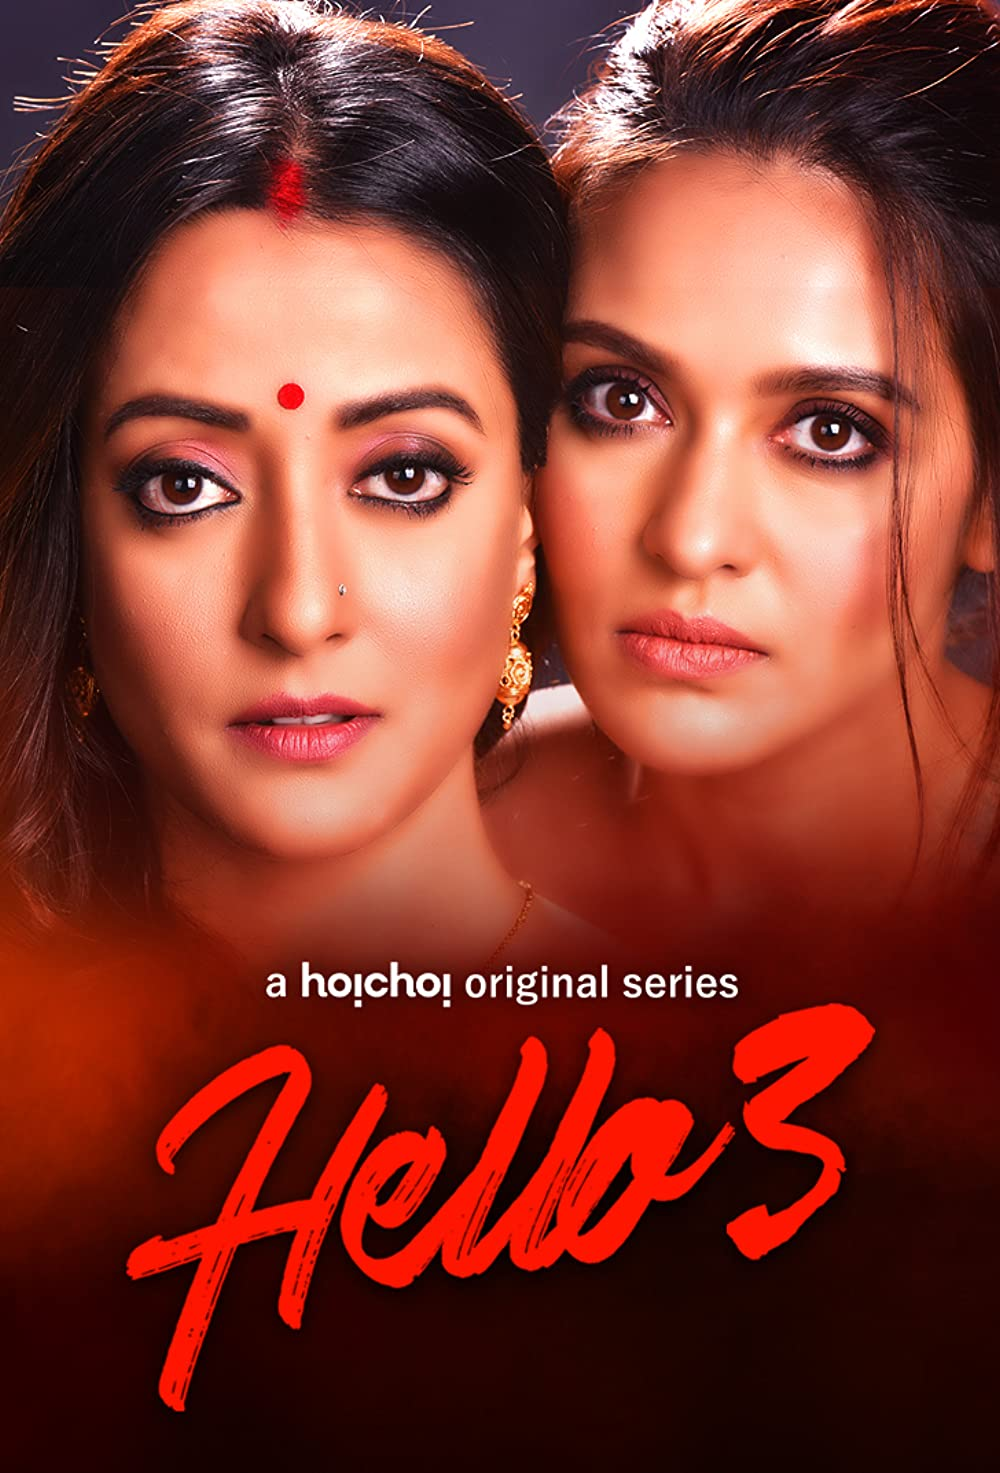 Hello 3 2021 S03 Hoichoi Originals Bengali Web Series 405MB HDRip Download